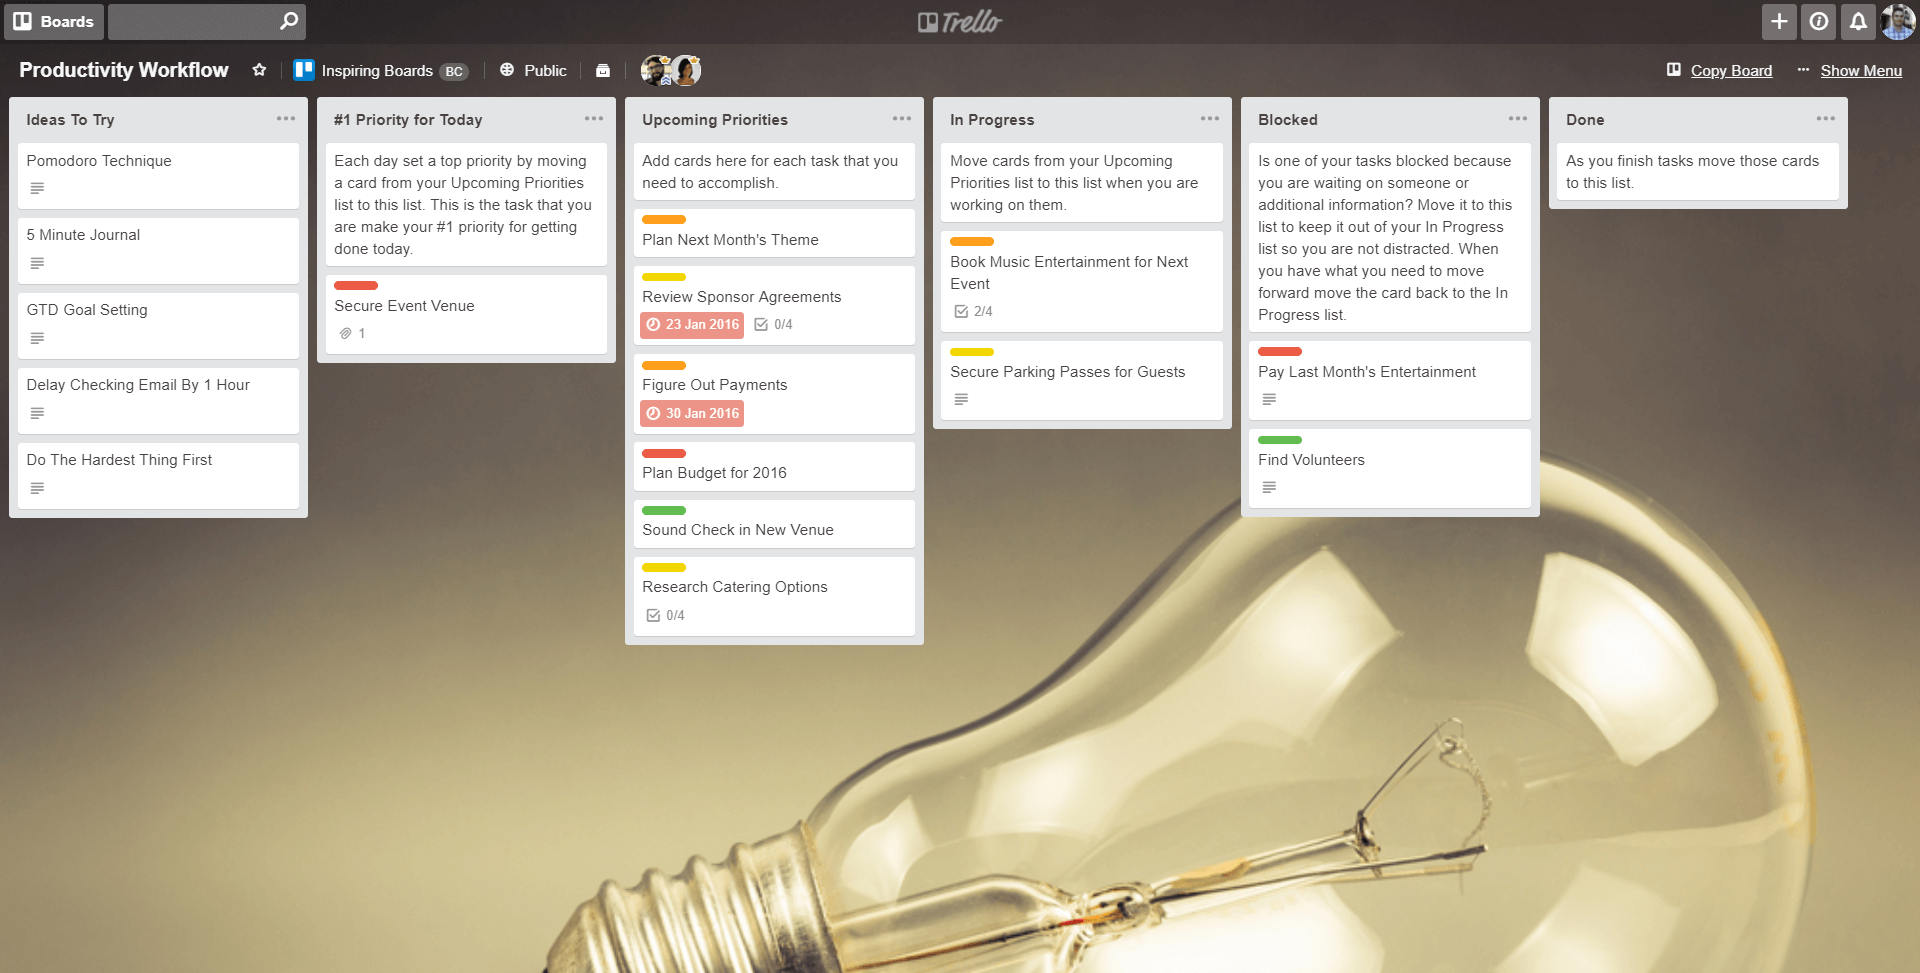 Trello Board Example Showing a Productivity Workflow